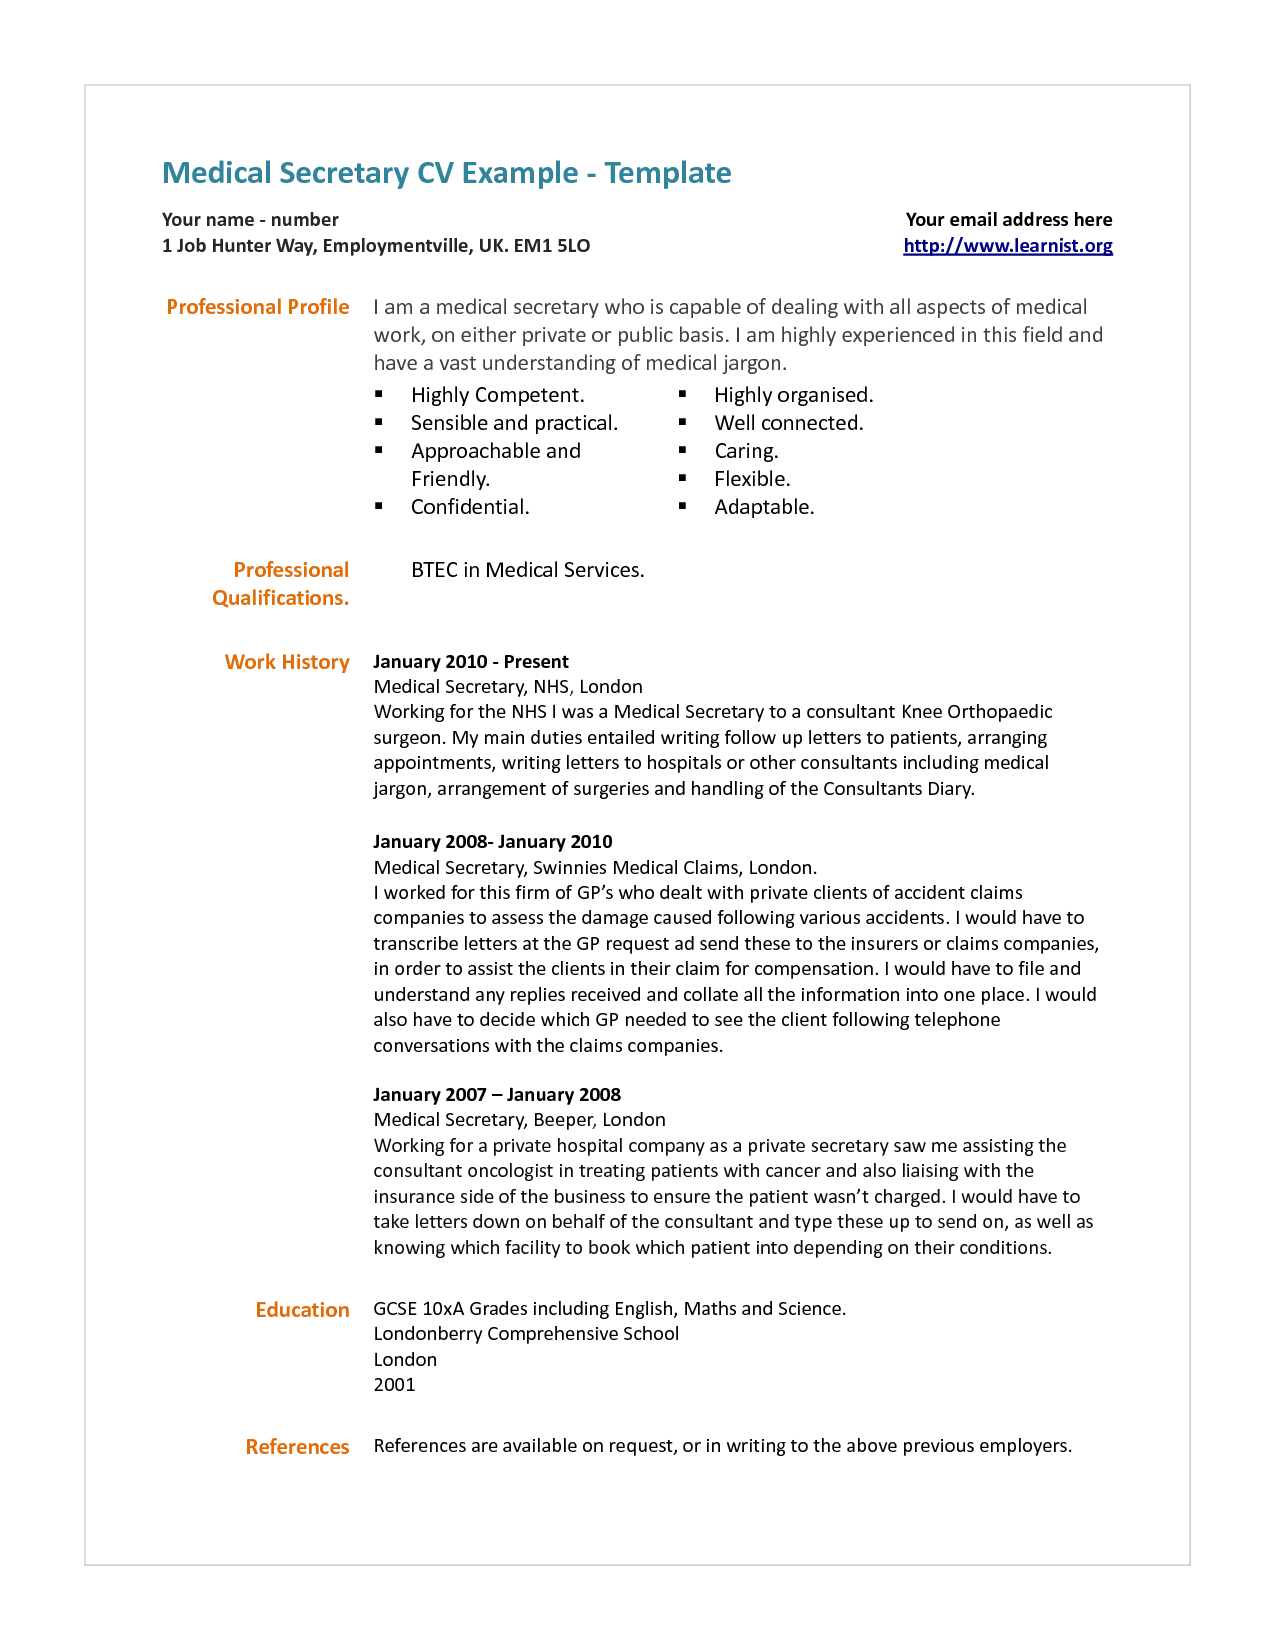 Cover letter for medical secretary resume